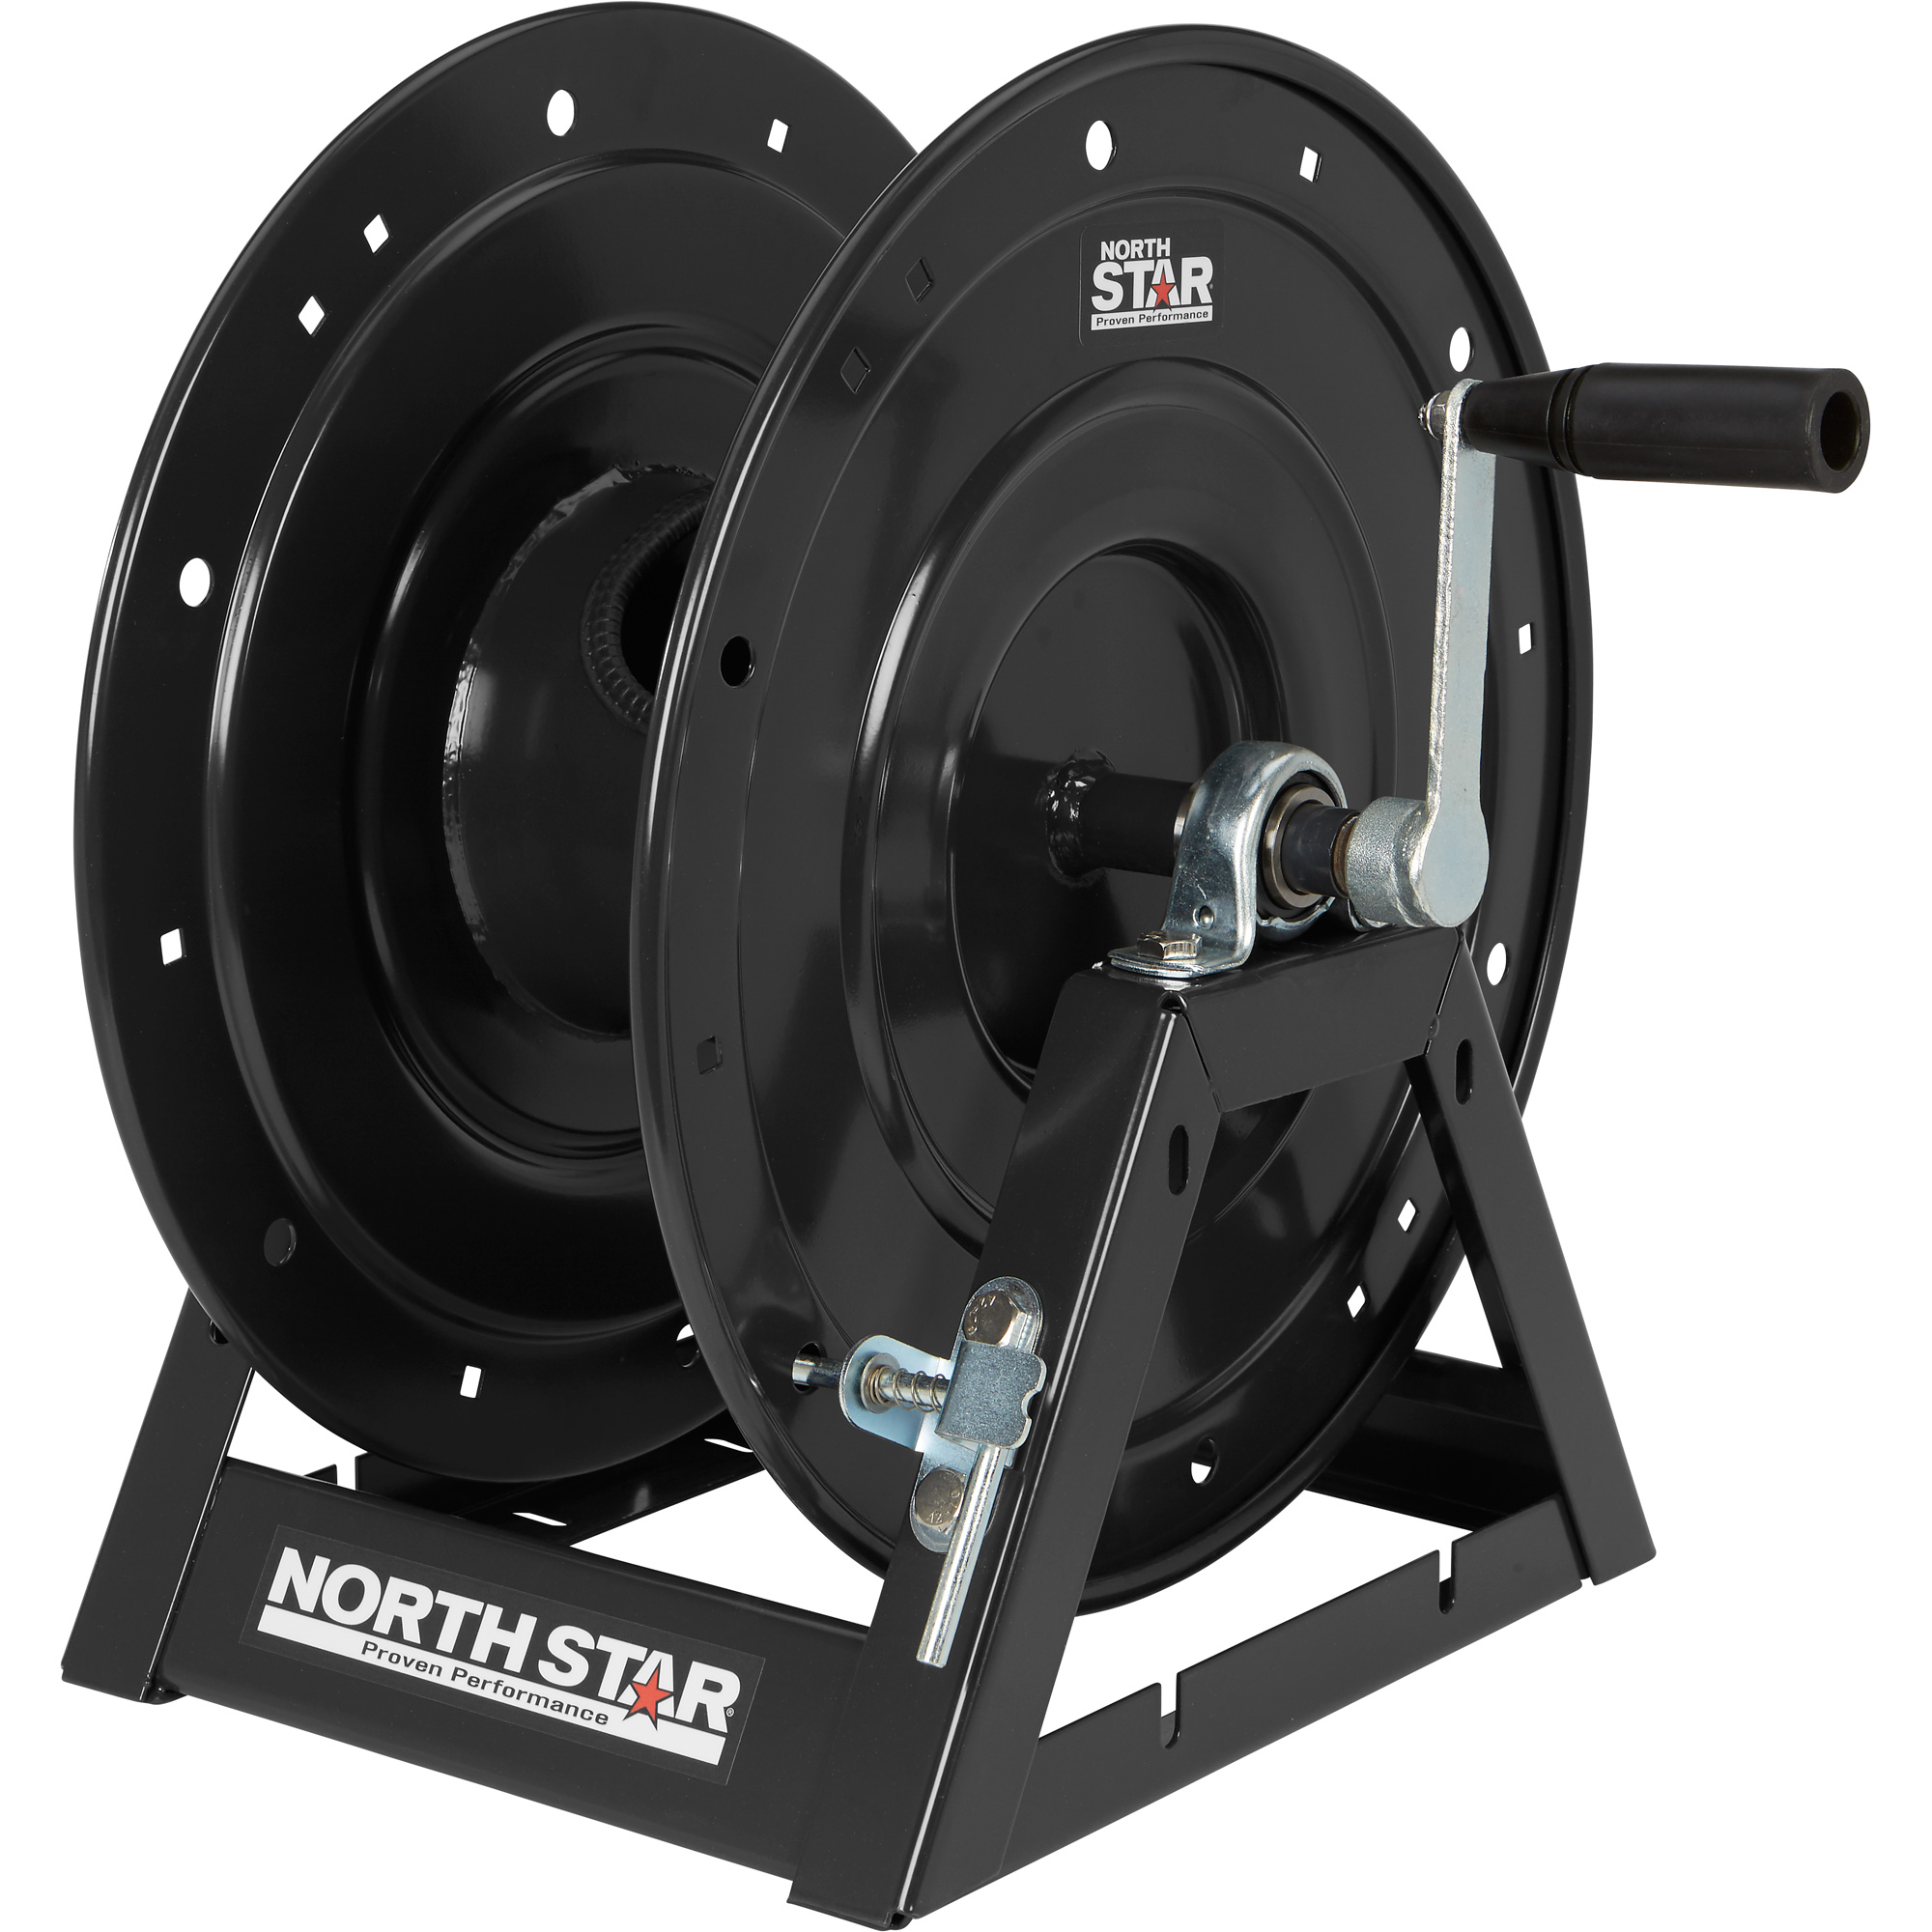 NorthStar 55791 Heavy-Duty A-Frame Hose Reel - 5000 PSI, 150ft. Capacity